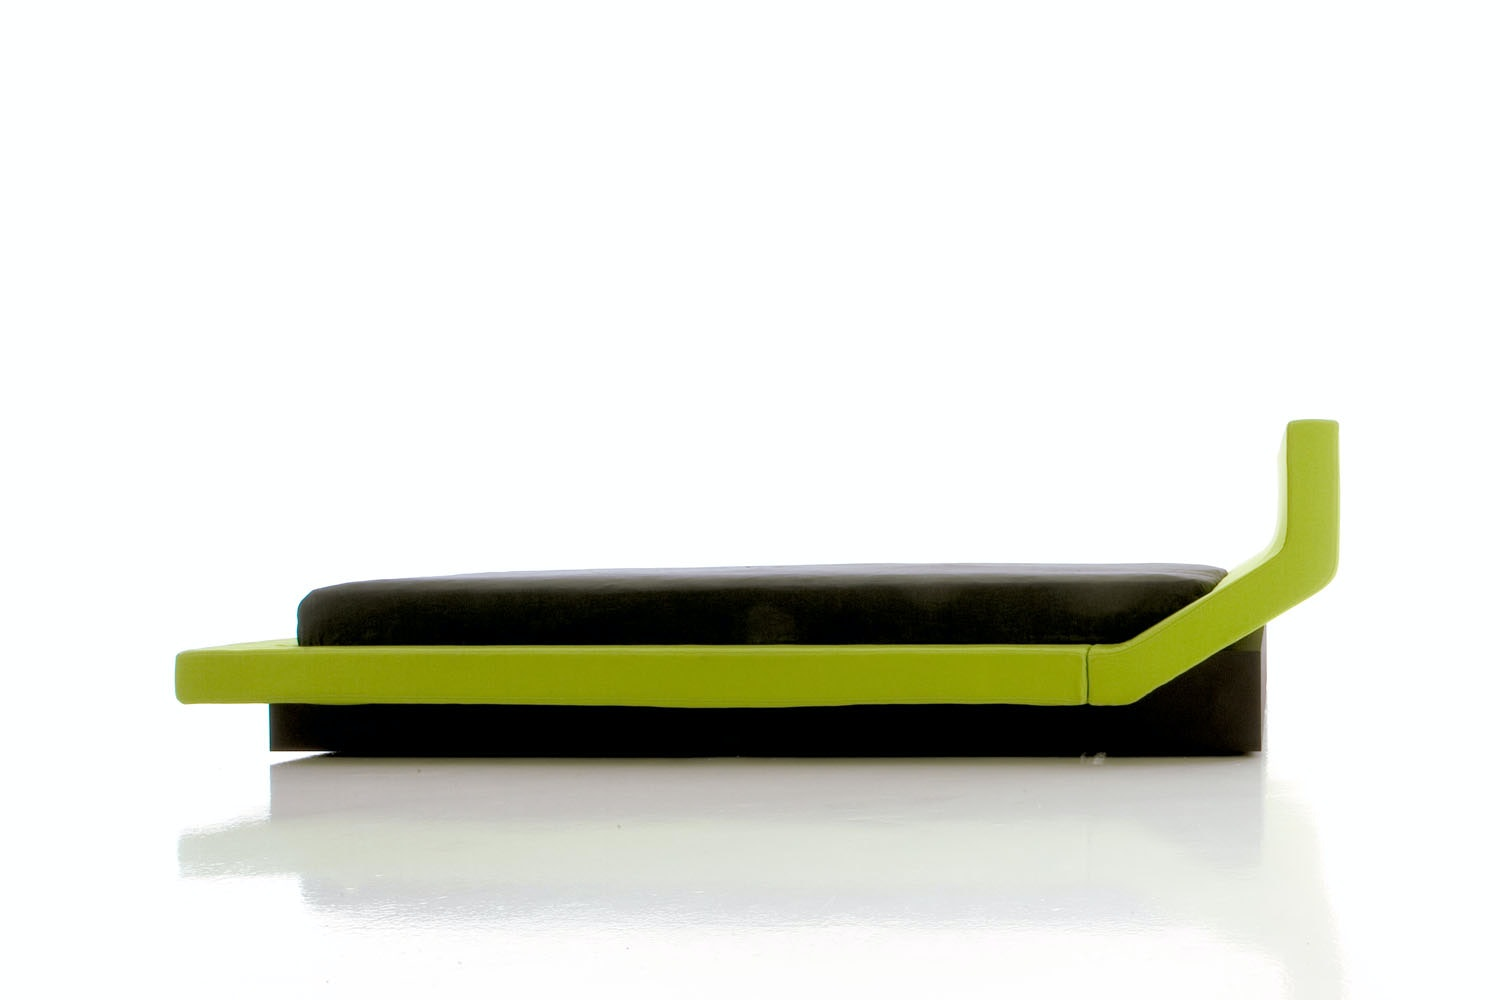 Lipla Bed by Jean-Marie Massaud for Porro